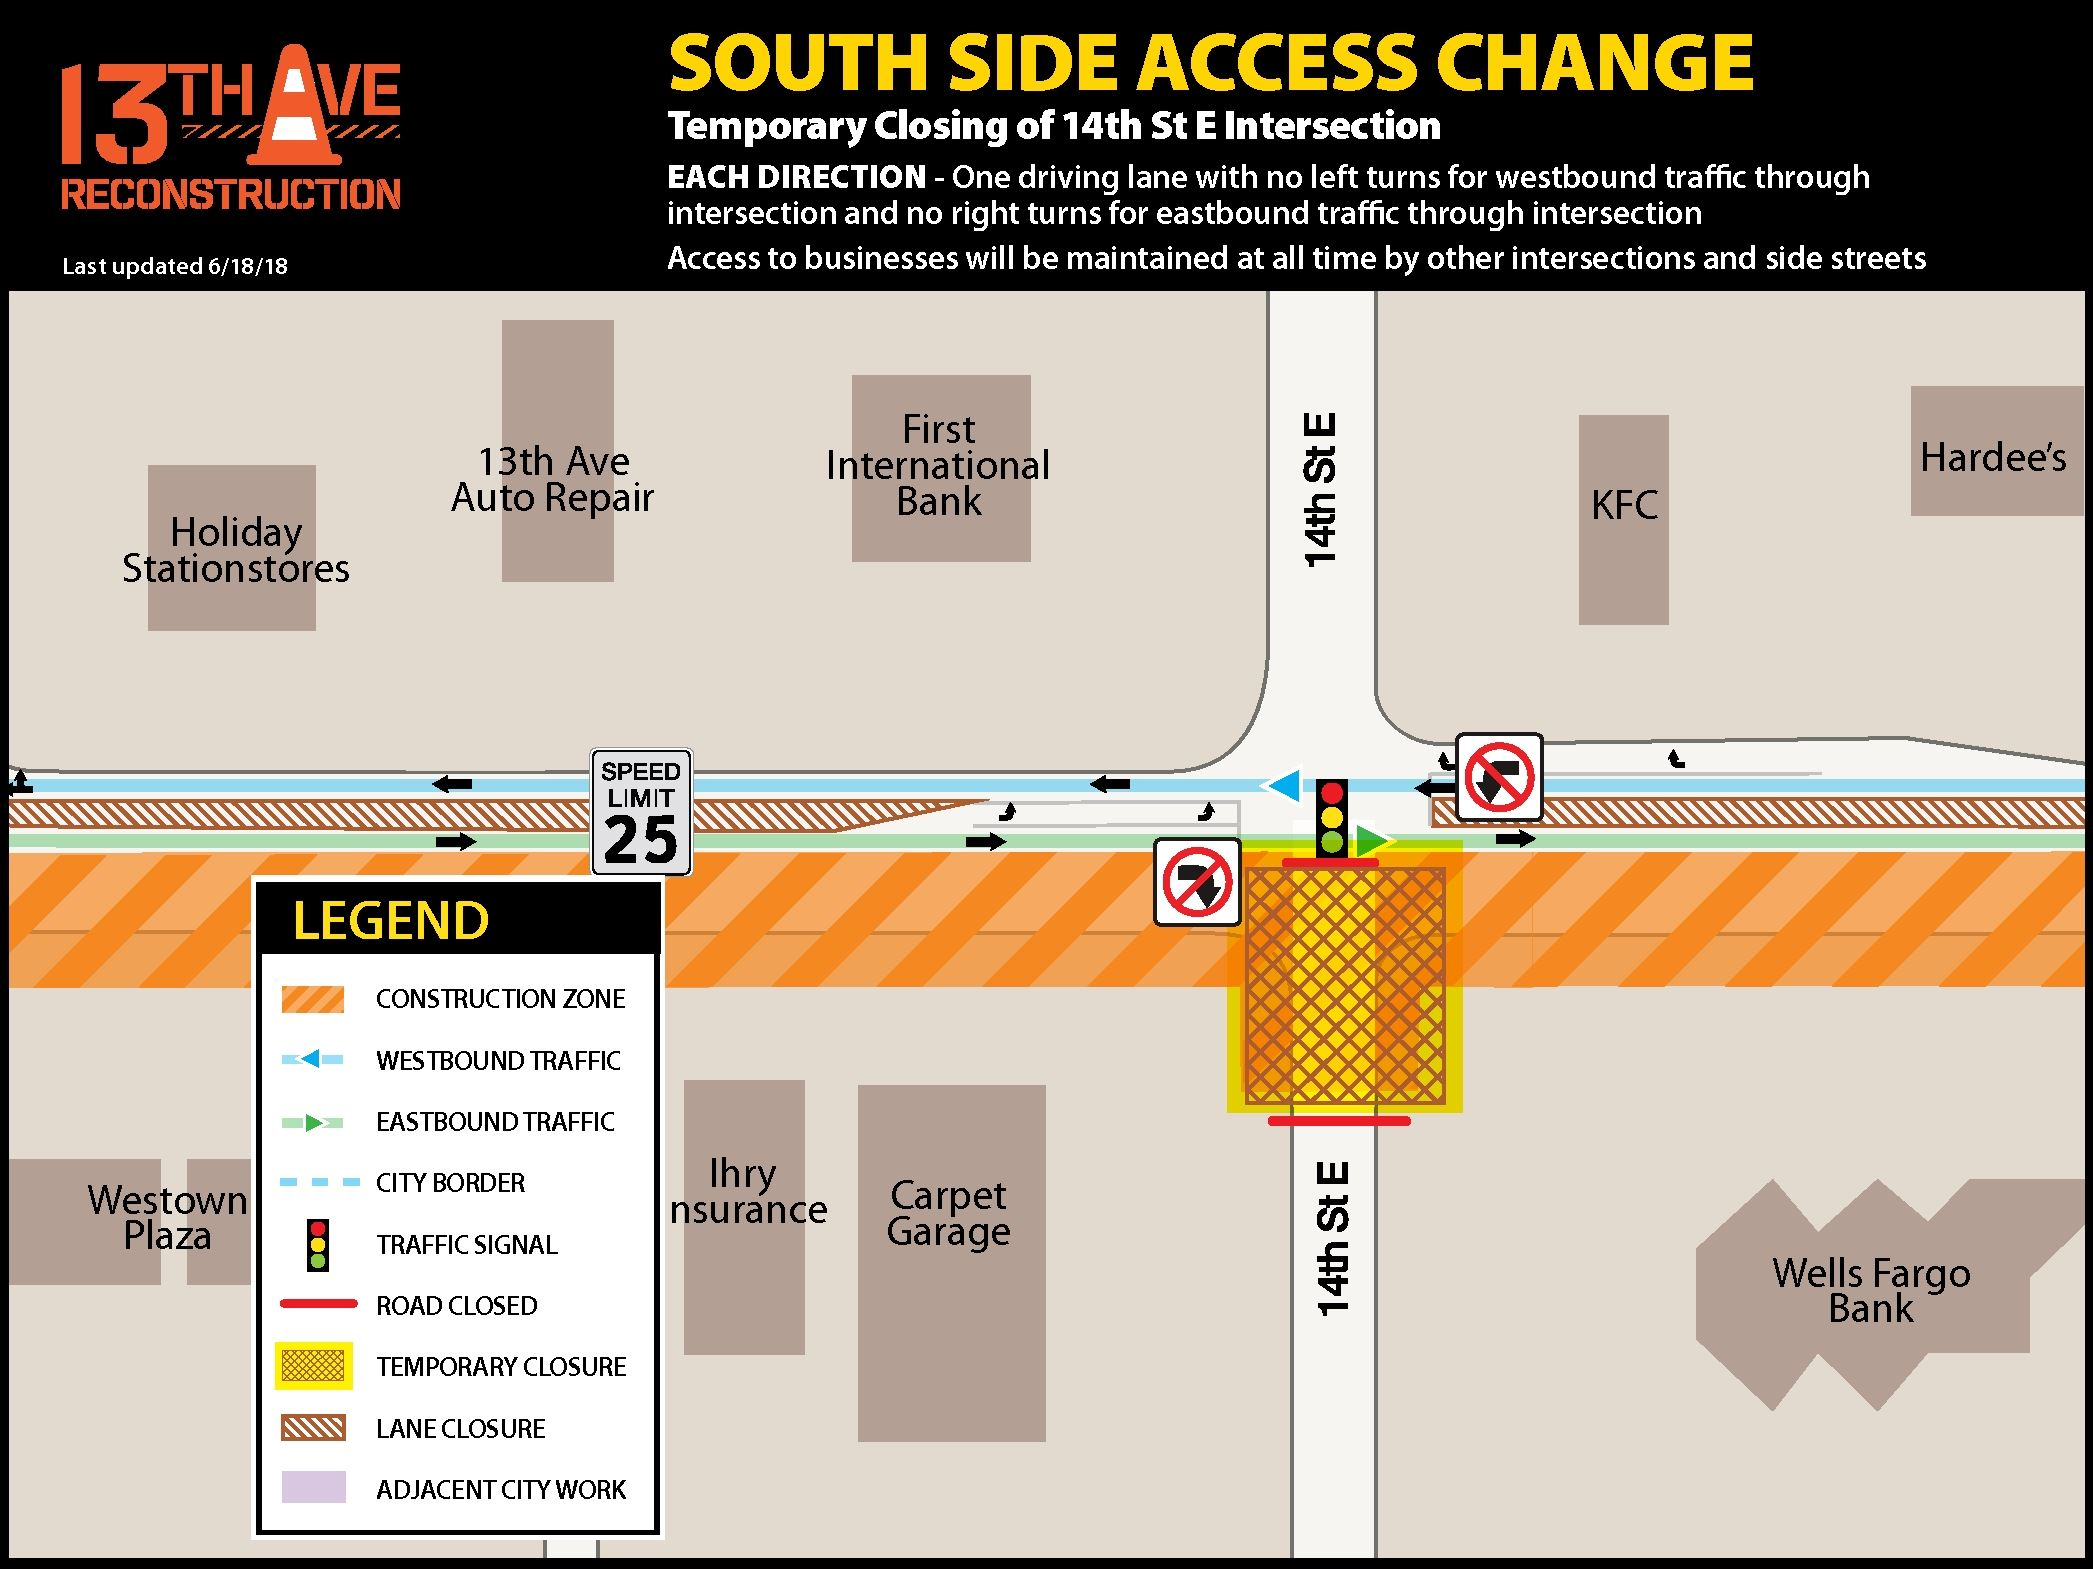 South side access change -temporary closing of 14th St. E. intersection